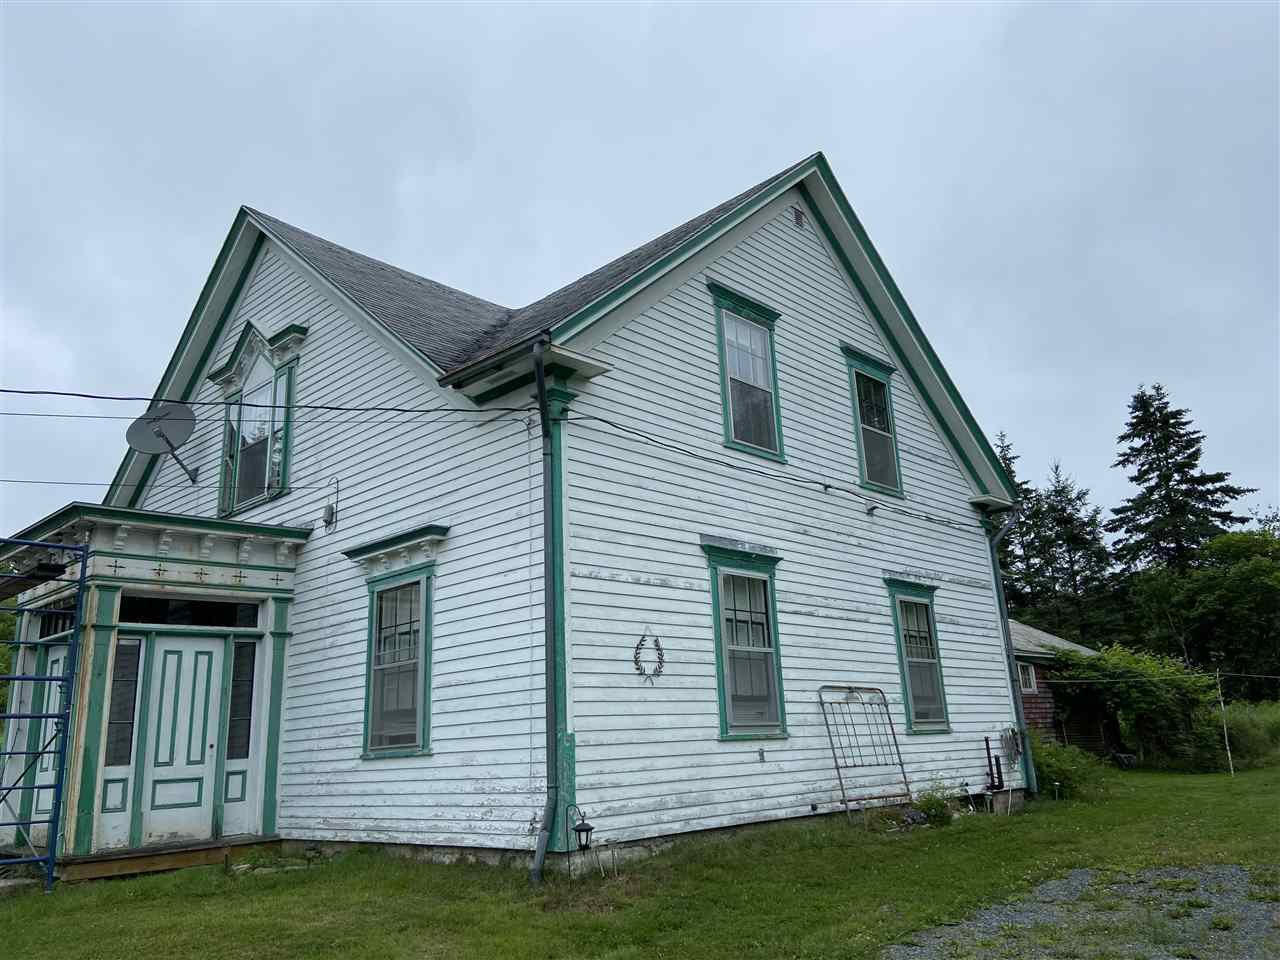 Main Photo: 46 Third Street in Sherbrooke: 303-Guysborough County Residential for sale (Highland Region)  : MLS®# 202013798